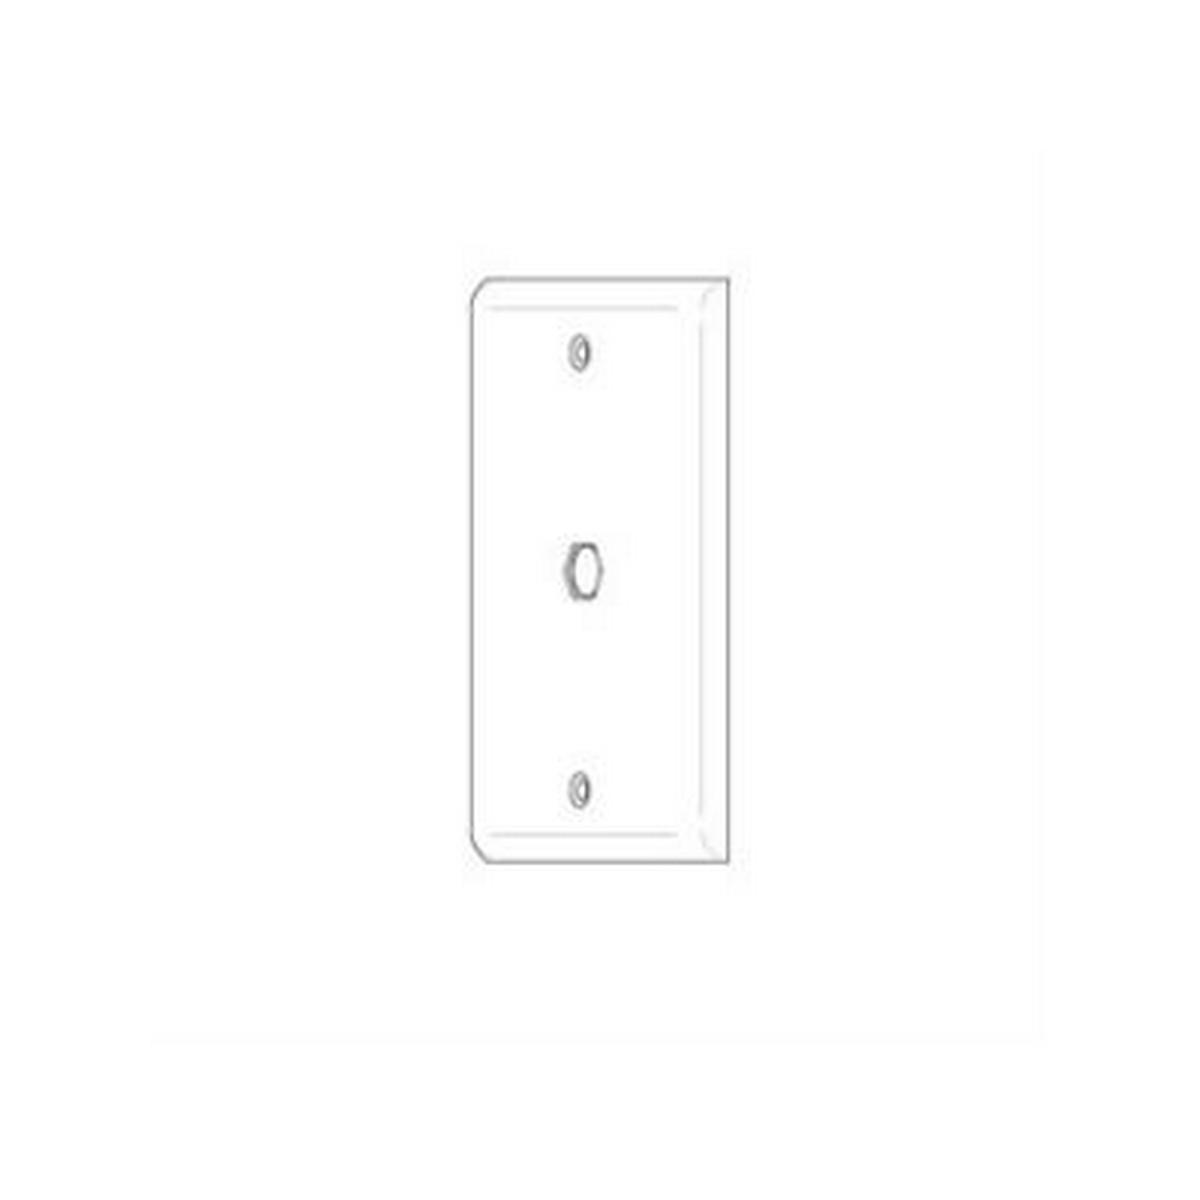 Vanco 120040 WP HEX HOLE WHT